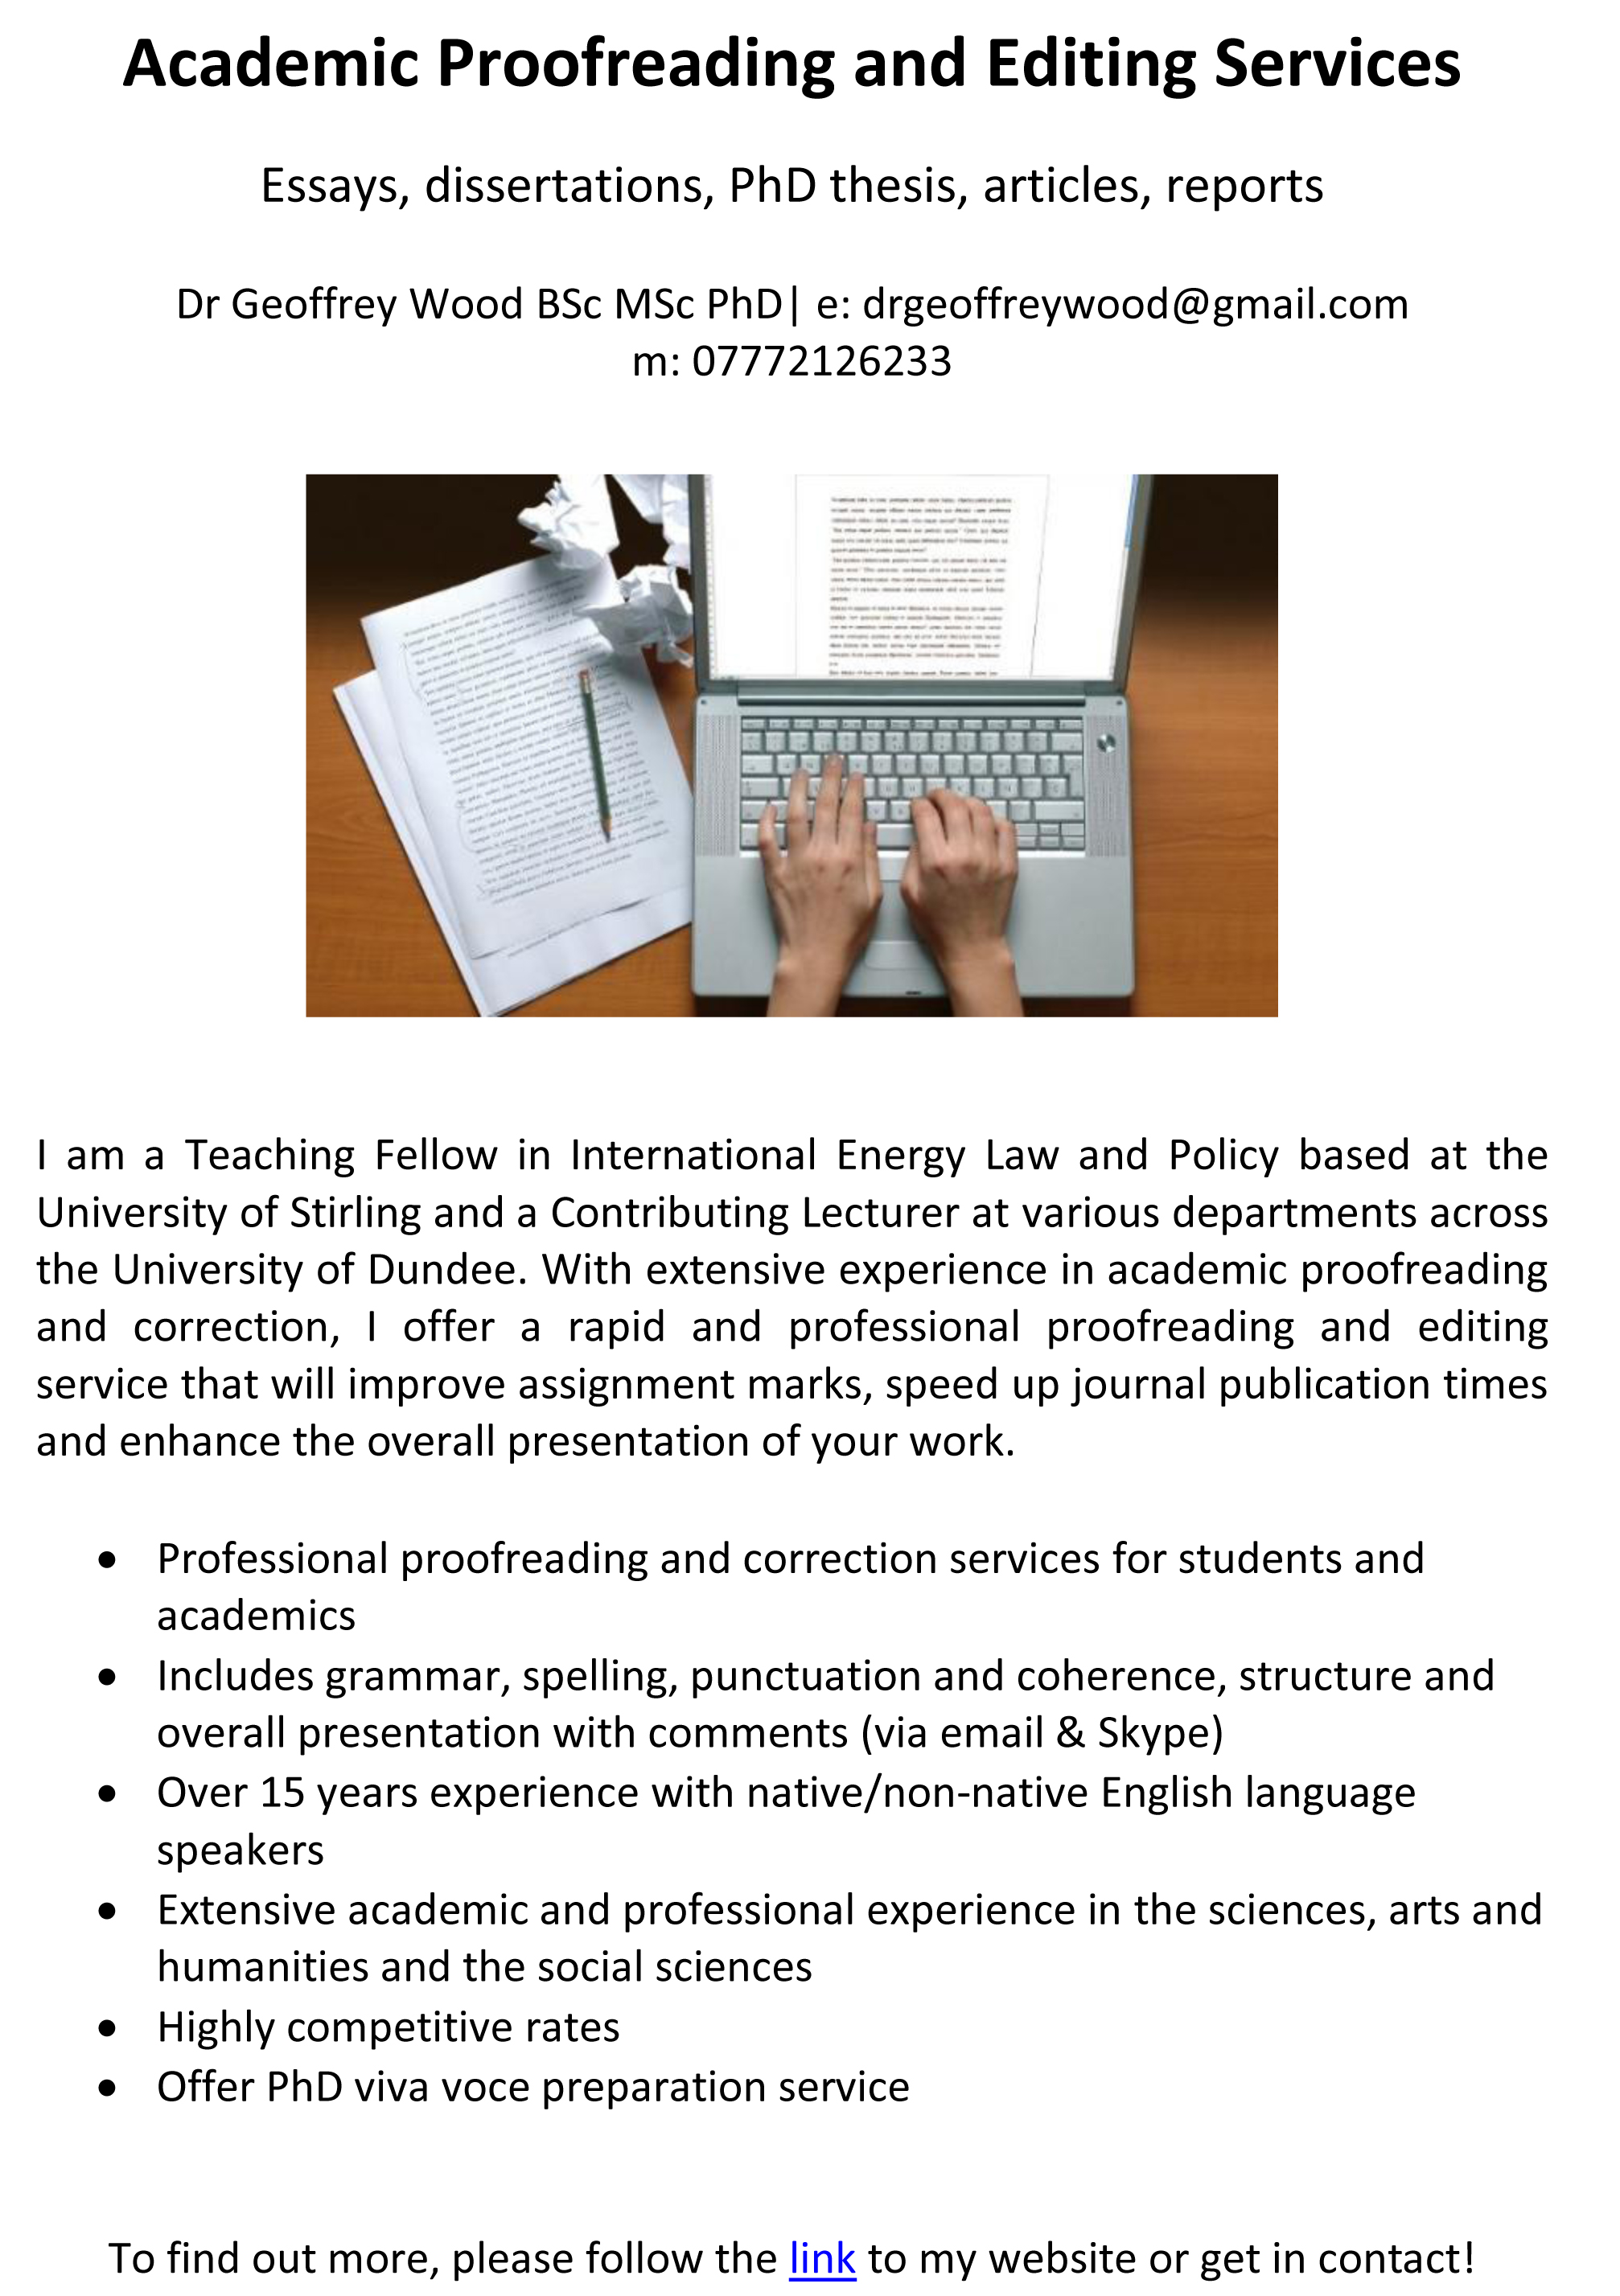 Academic essay editing service